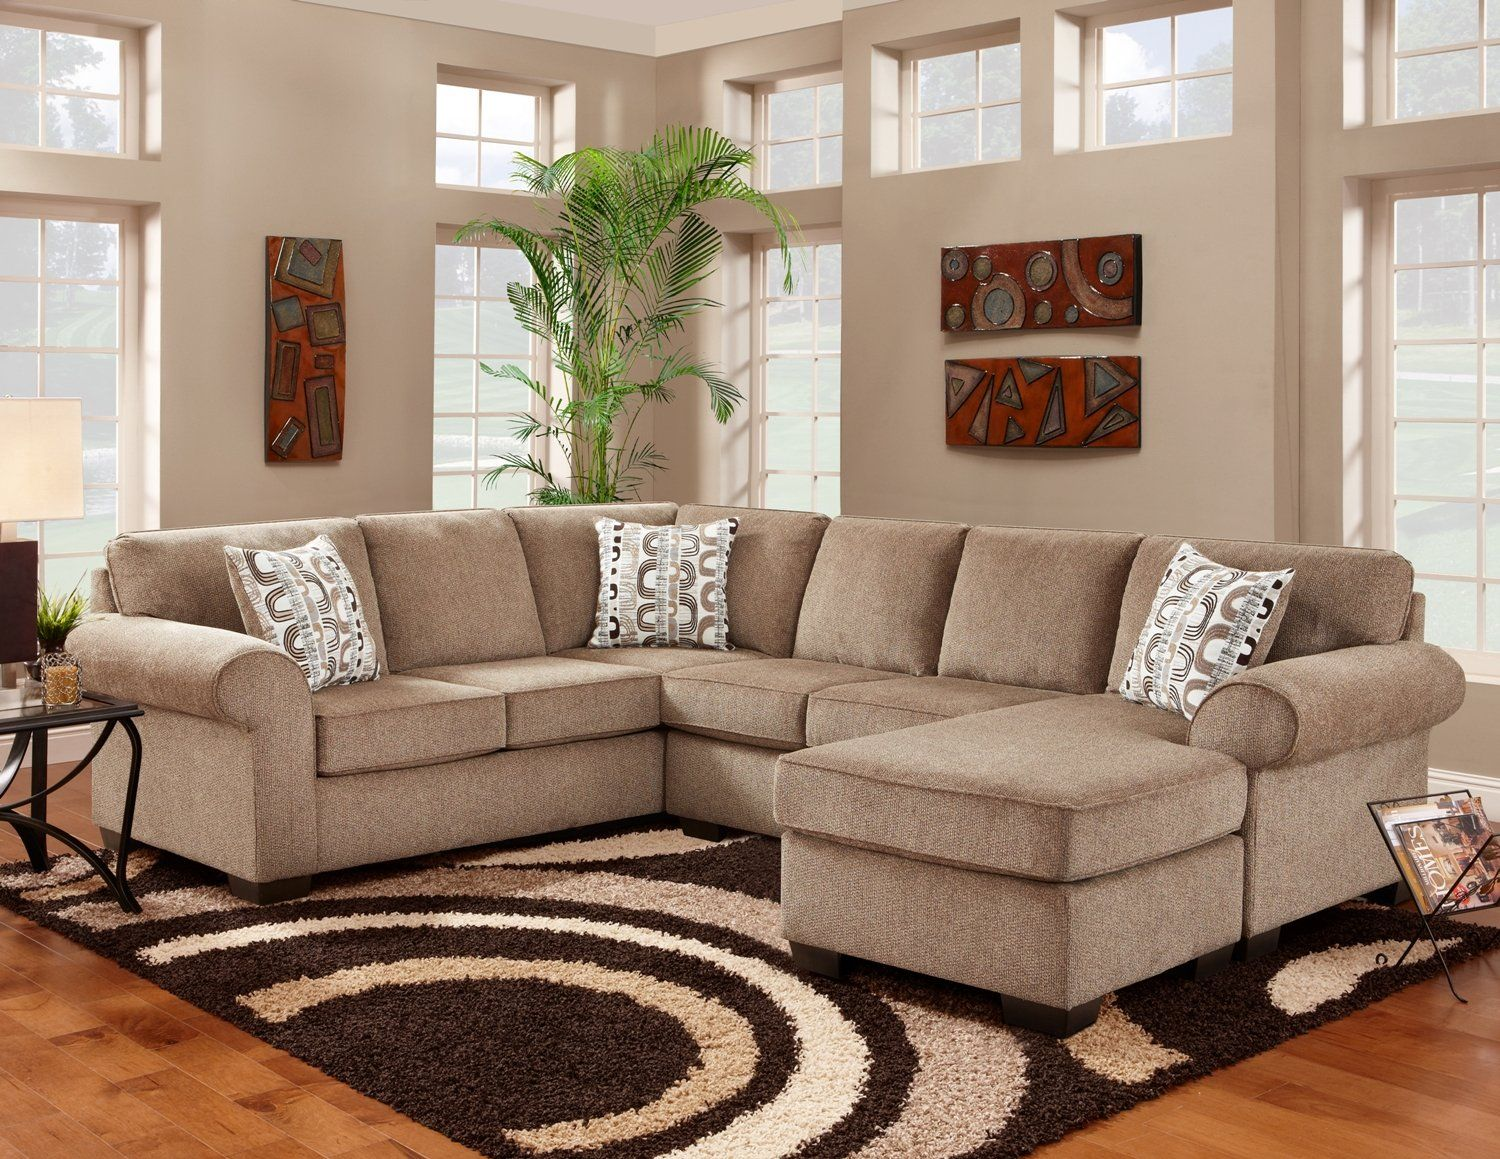 Surprising Affordable Furniture Jesse Cocoa Sectional Sofa For The Unemploymentrelief Wooden Chair Designs For Living Room Unemploymentrelieforg